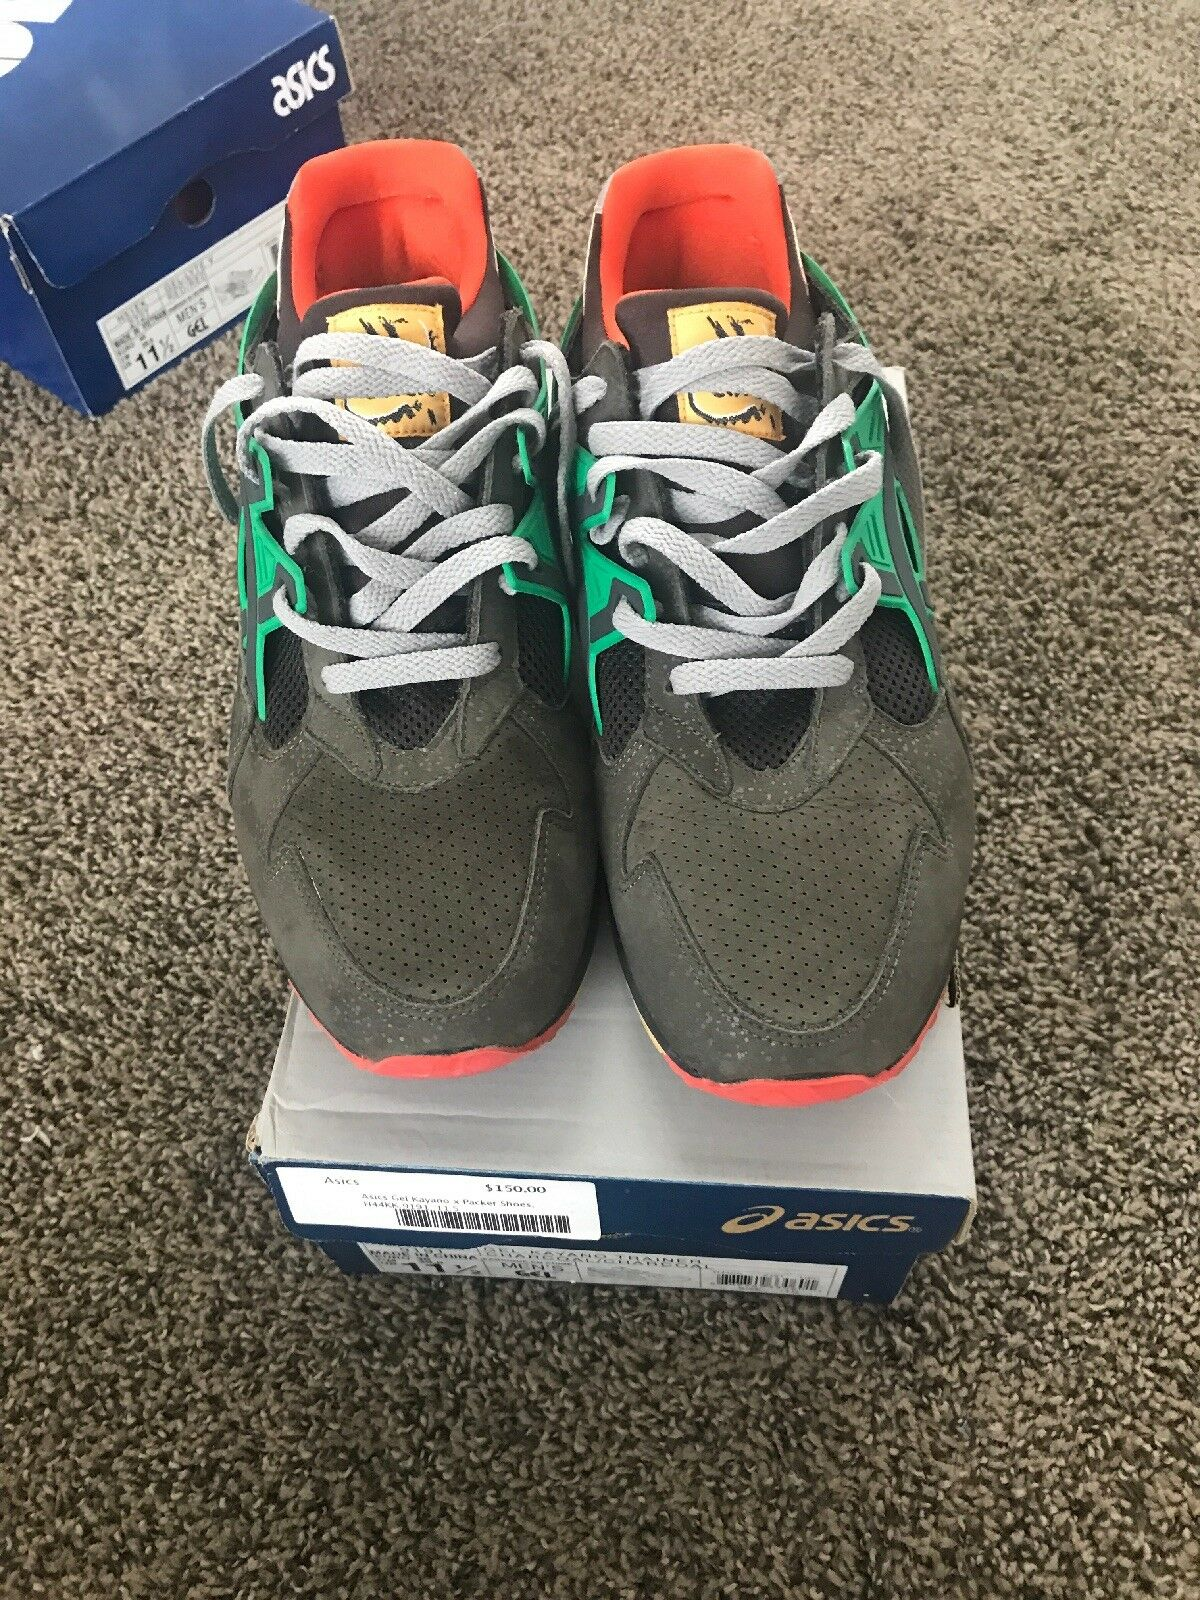 """Asics Gel Kayano Kayano Kayano x Packers shoes """"All Roads Leads To Teaneck"""" 320cef"""